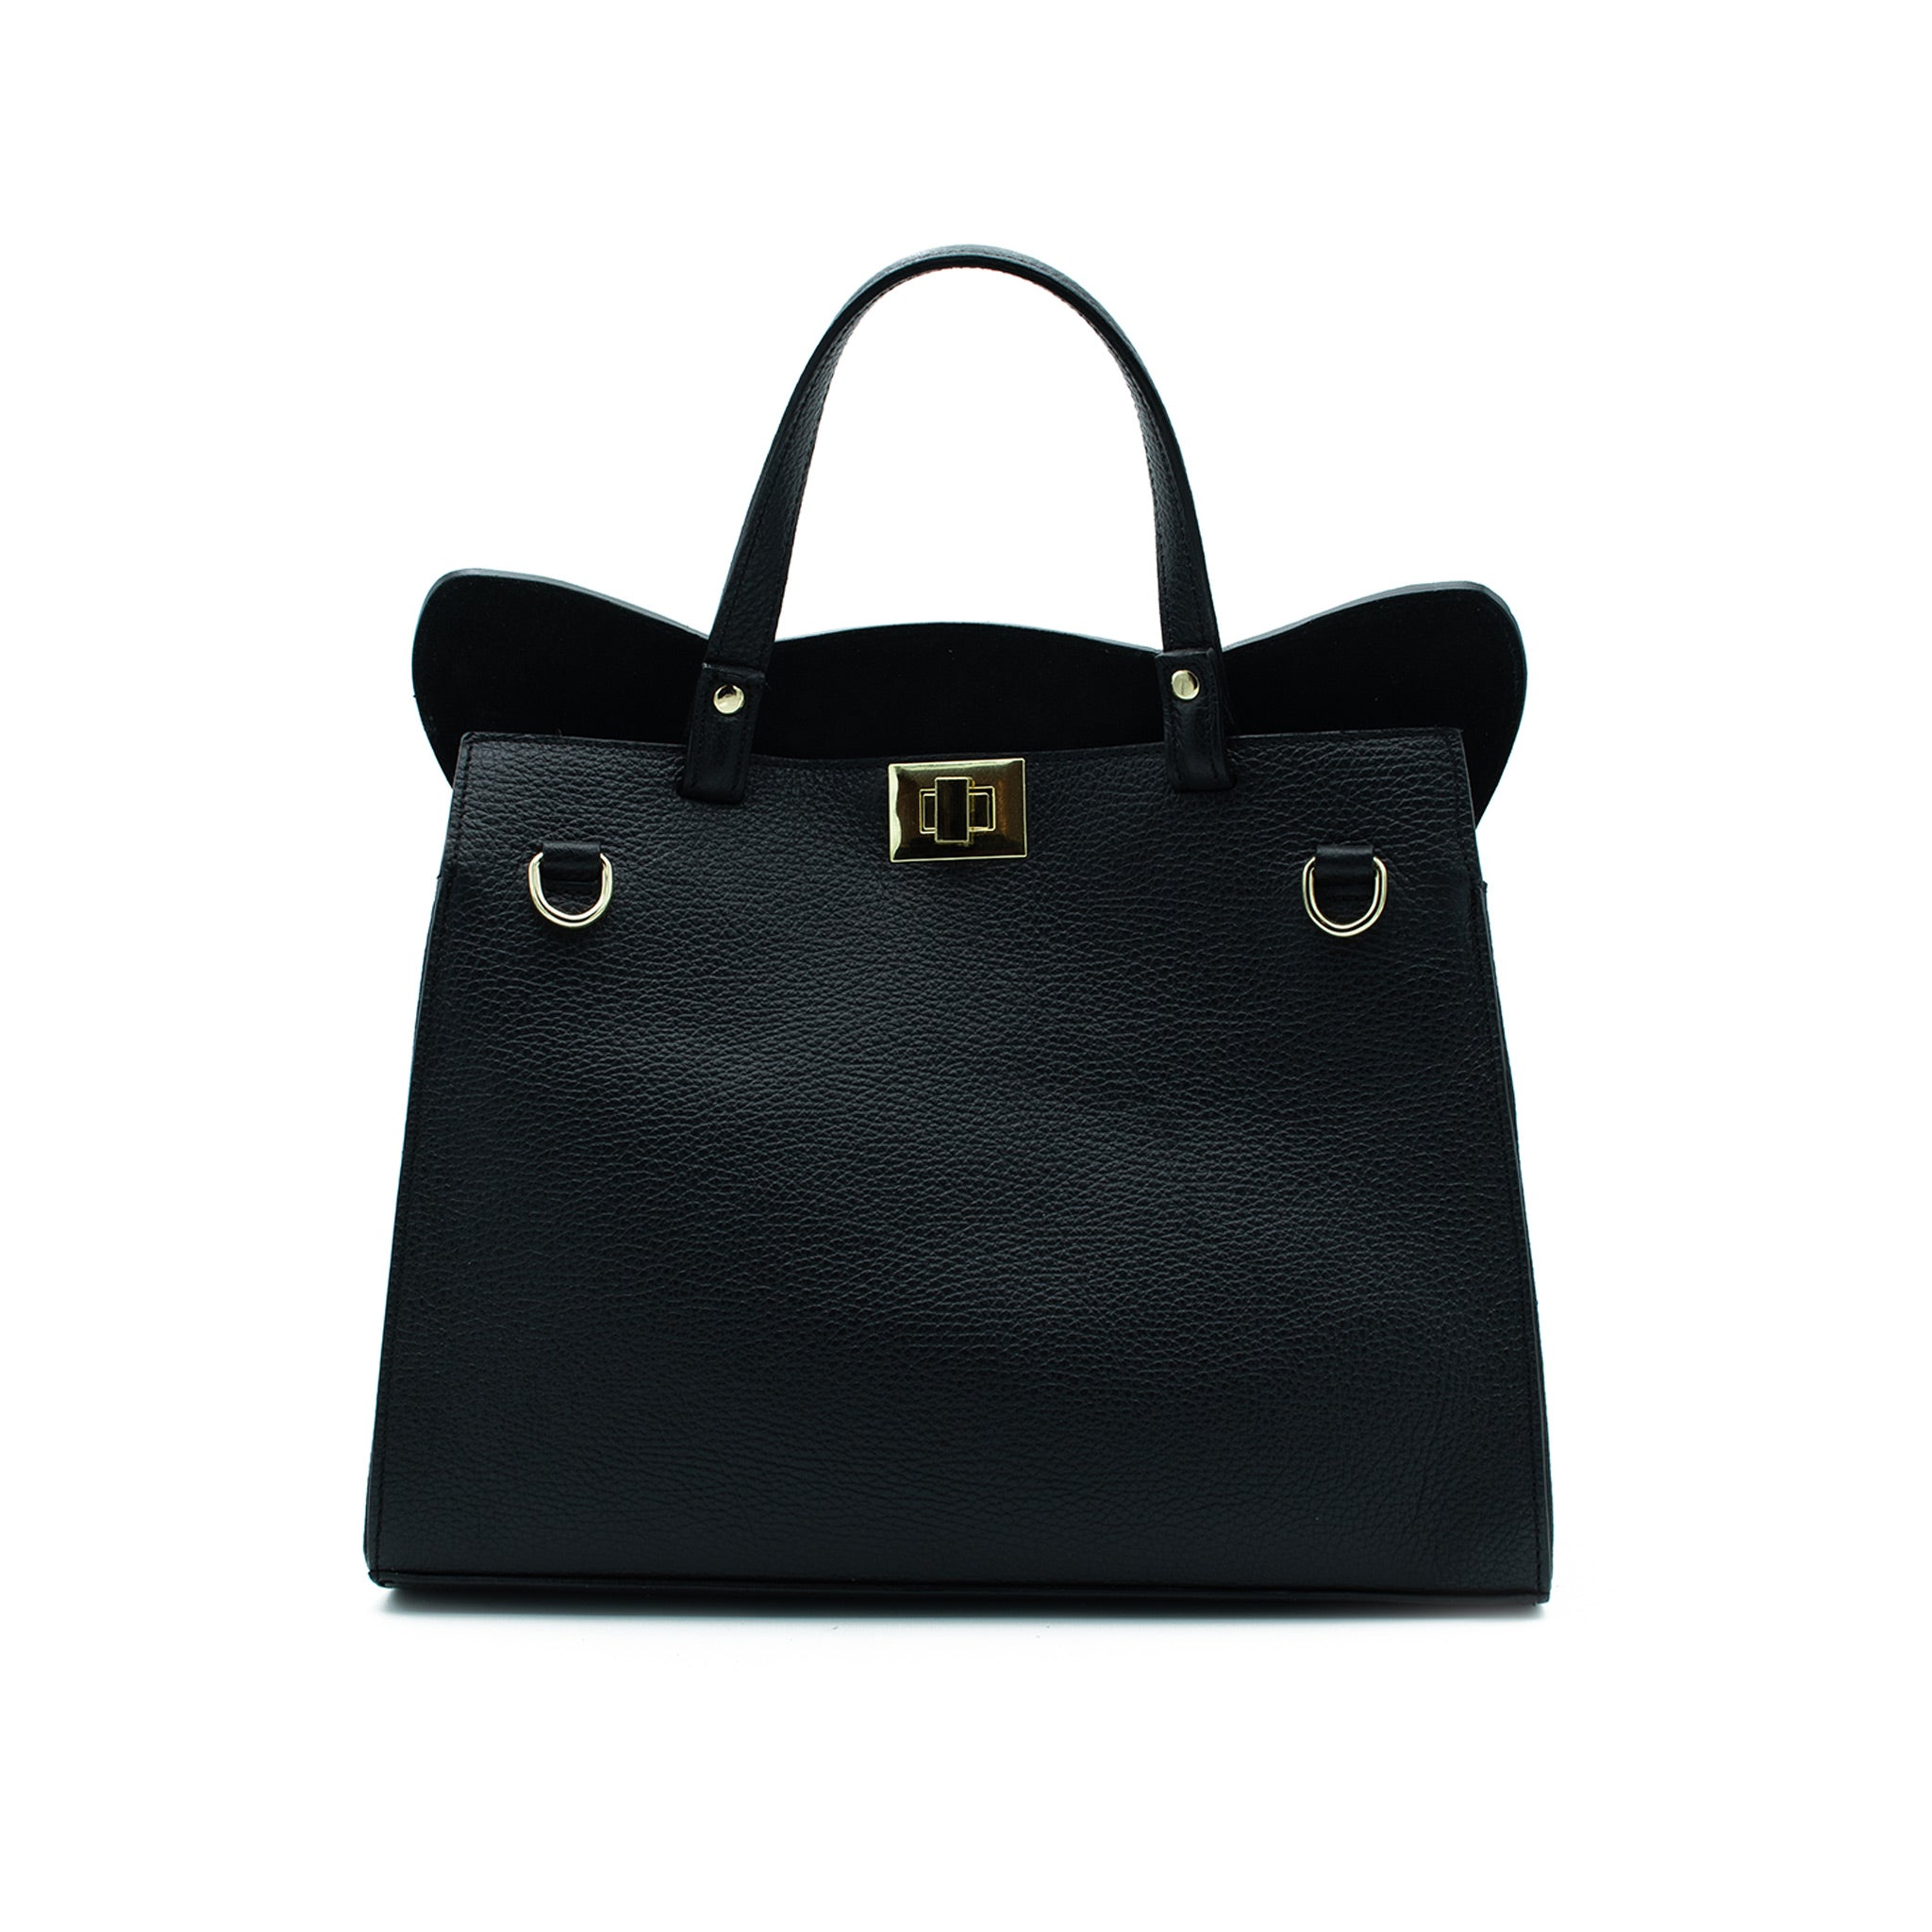 The Sheba leather Handbag